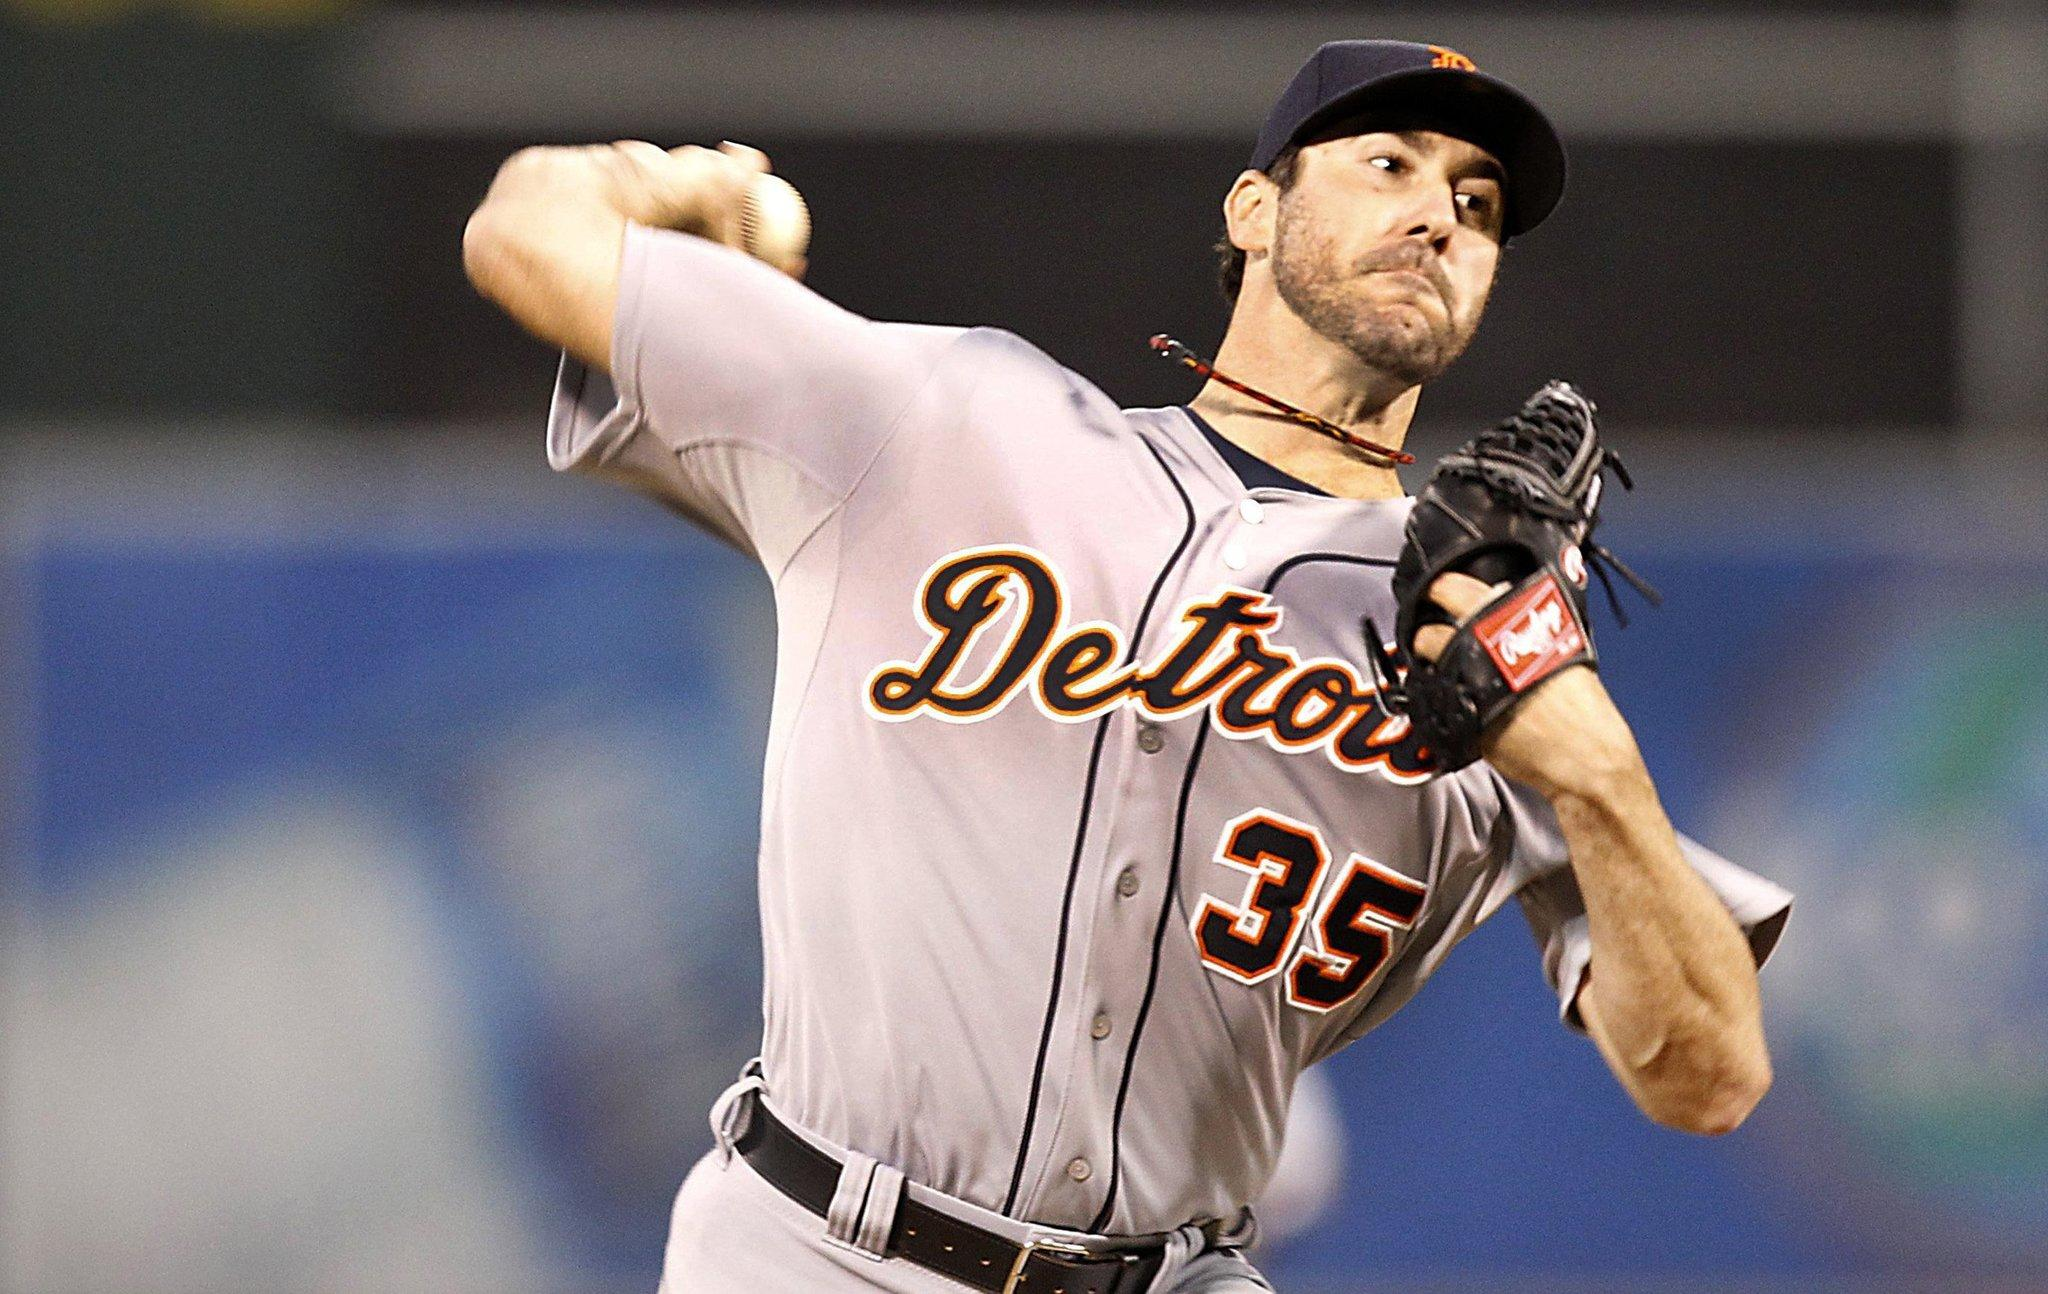 Detroit Tigers pitcher Justin Verlander works against the Oakland Athletics in Game 5 of the American League Division Series.